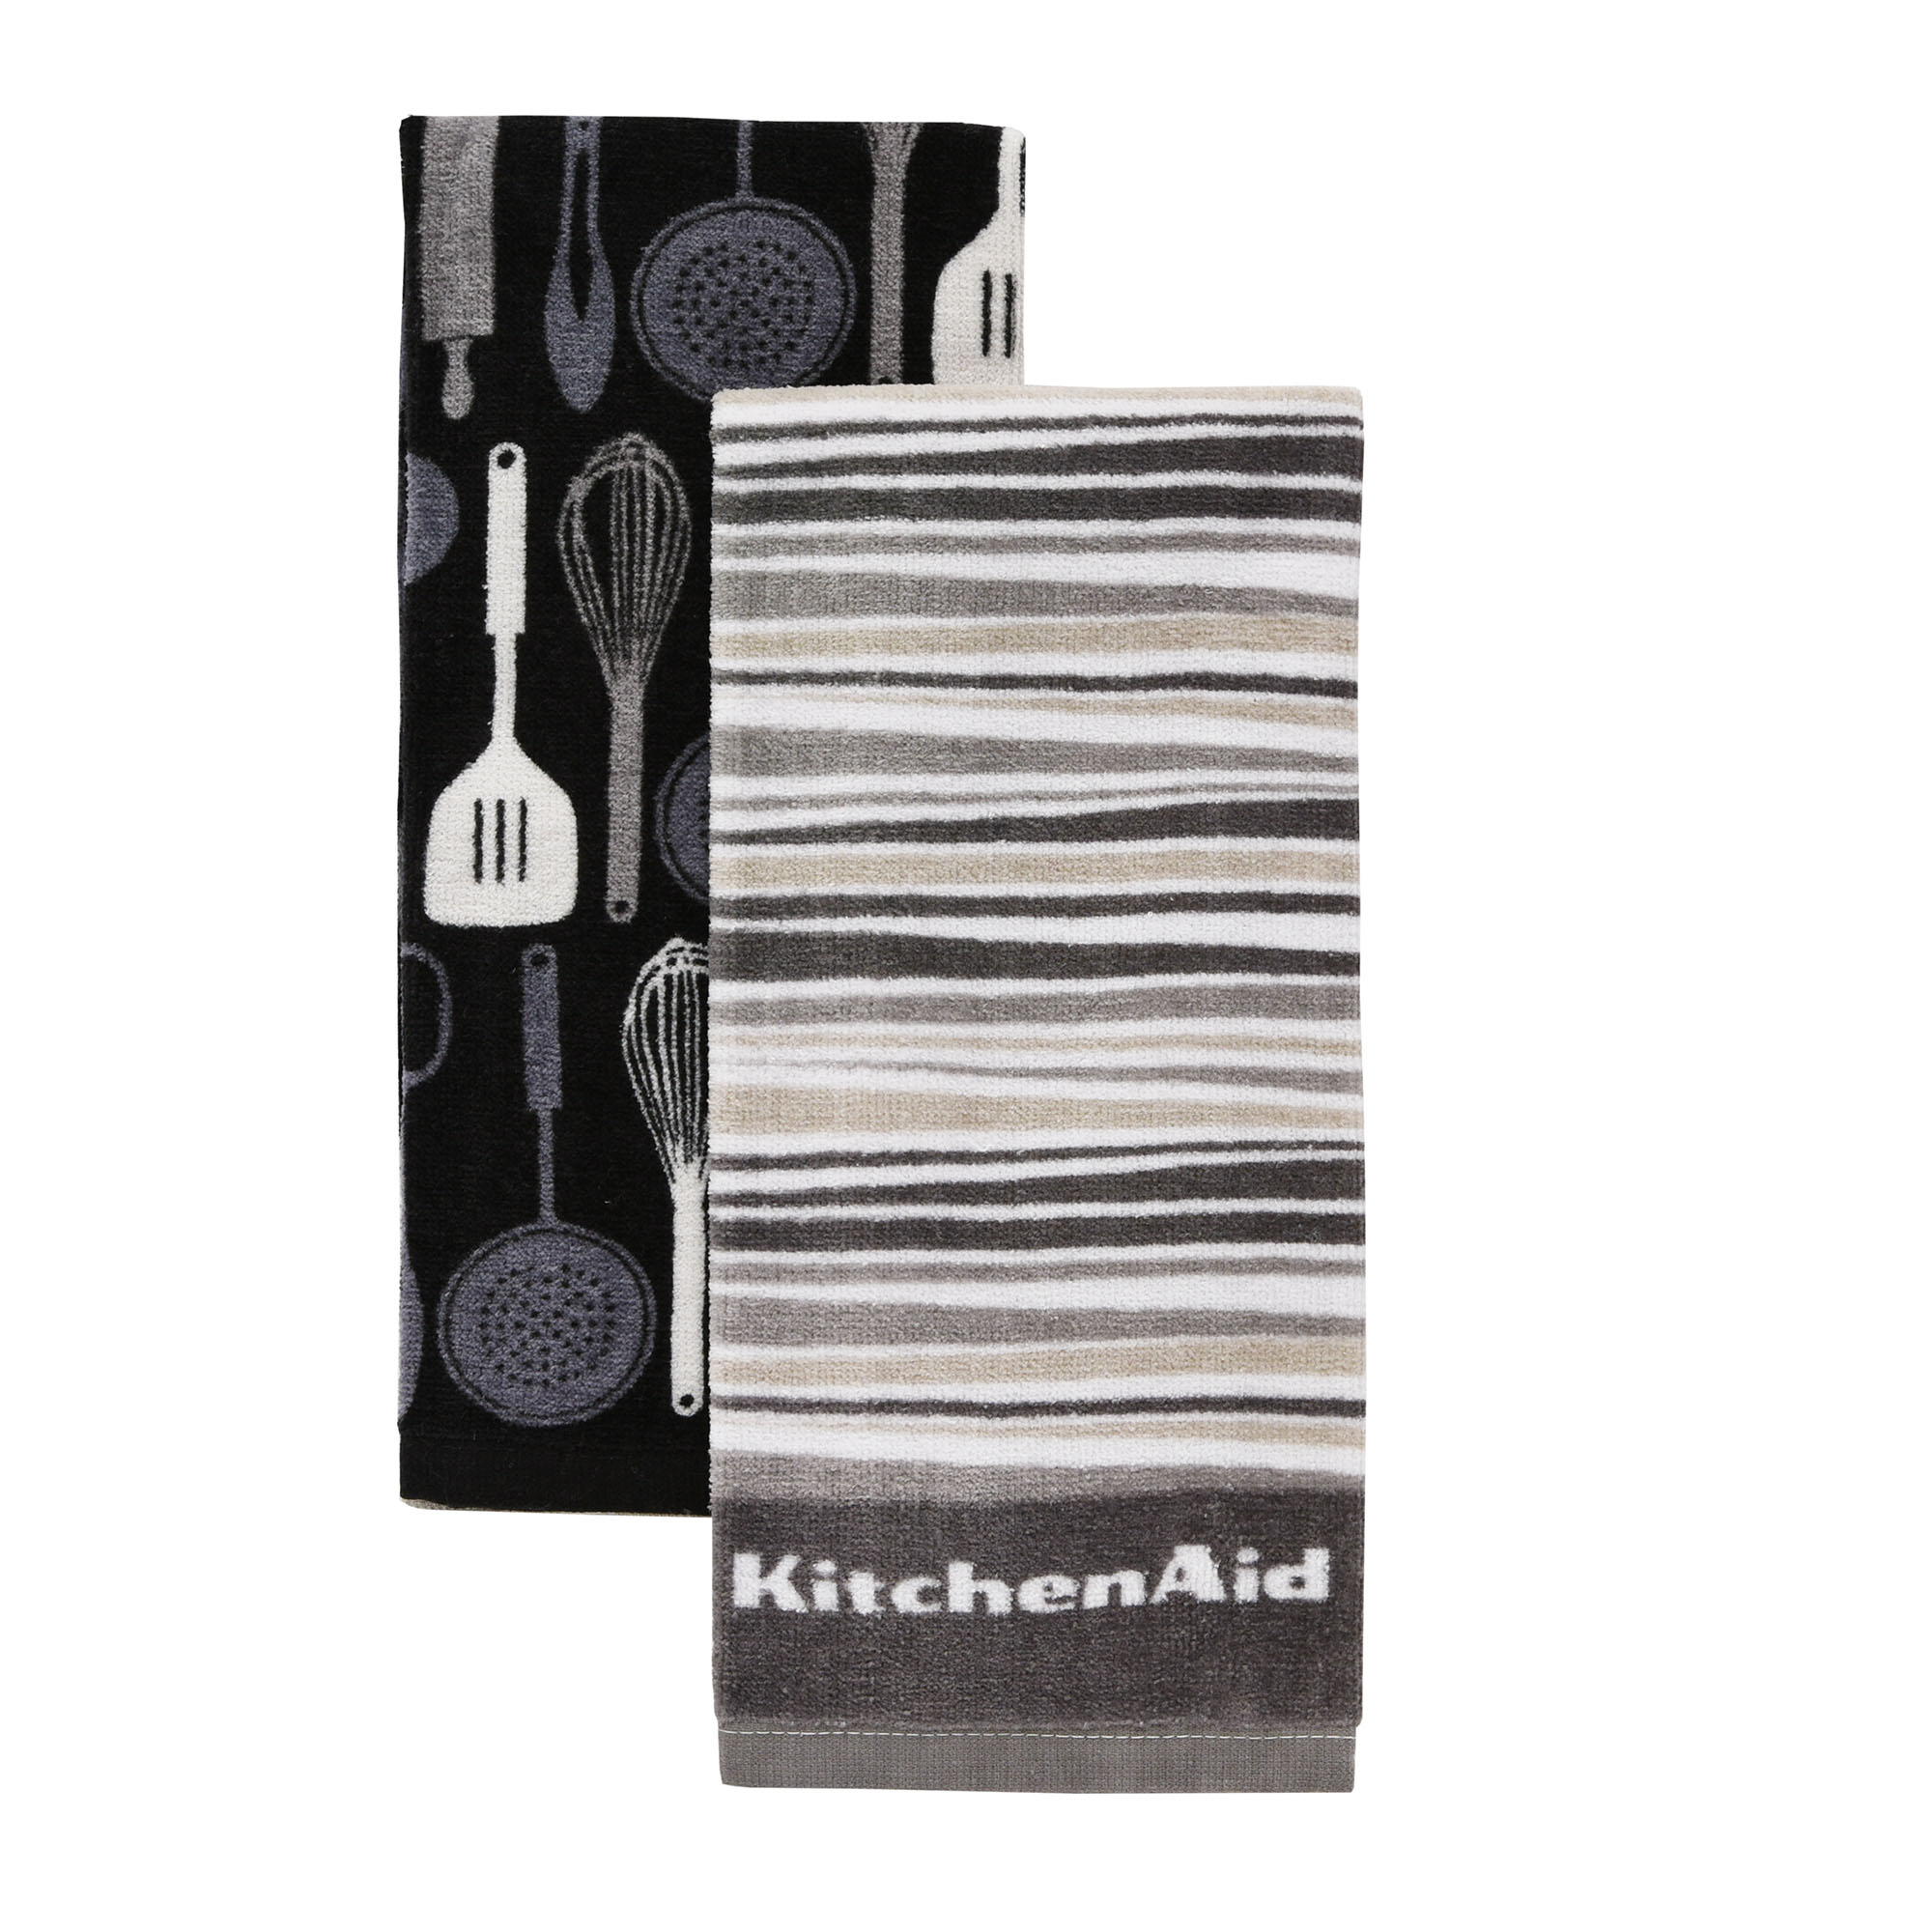 KitchenAid Utensils U0026 Stripe Kitchen Towels, Set Of 2, Grey